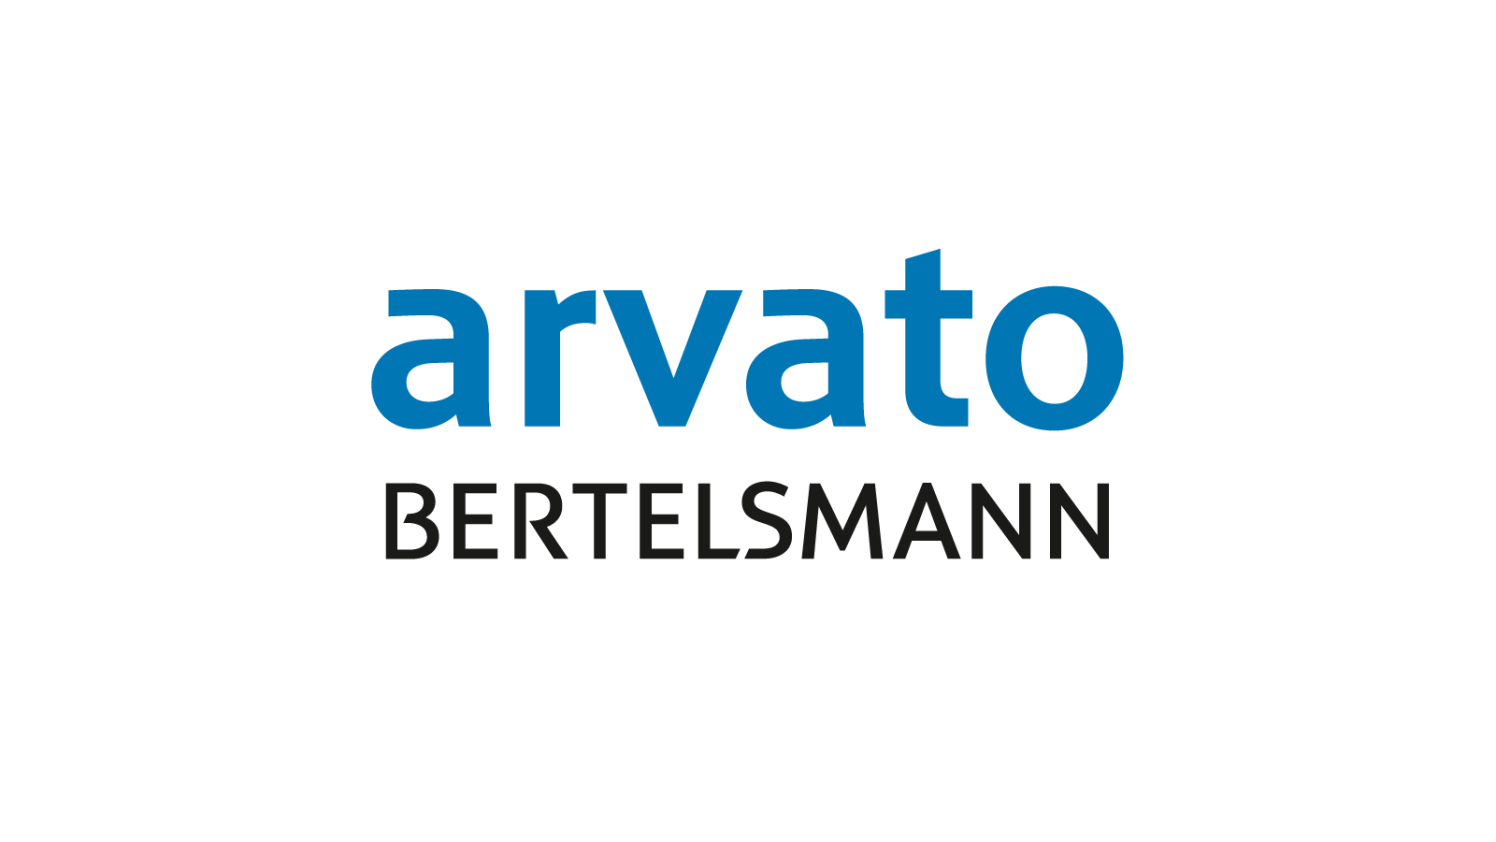 Certifications For Arvatos Microsoft Sites Bertelsmann Se Co Kgaa